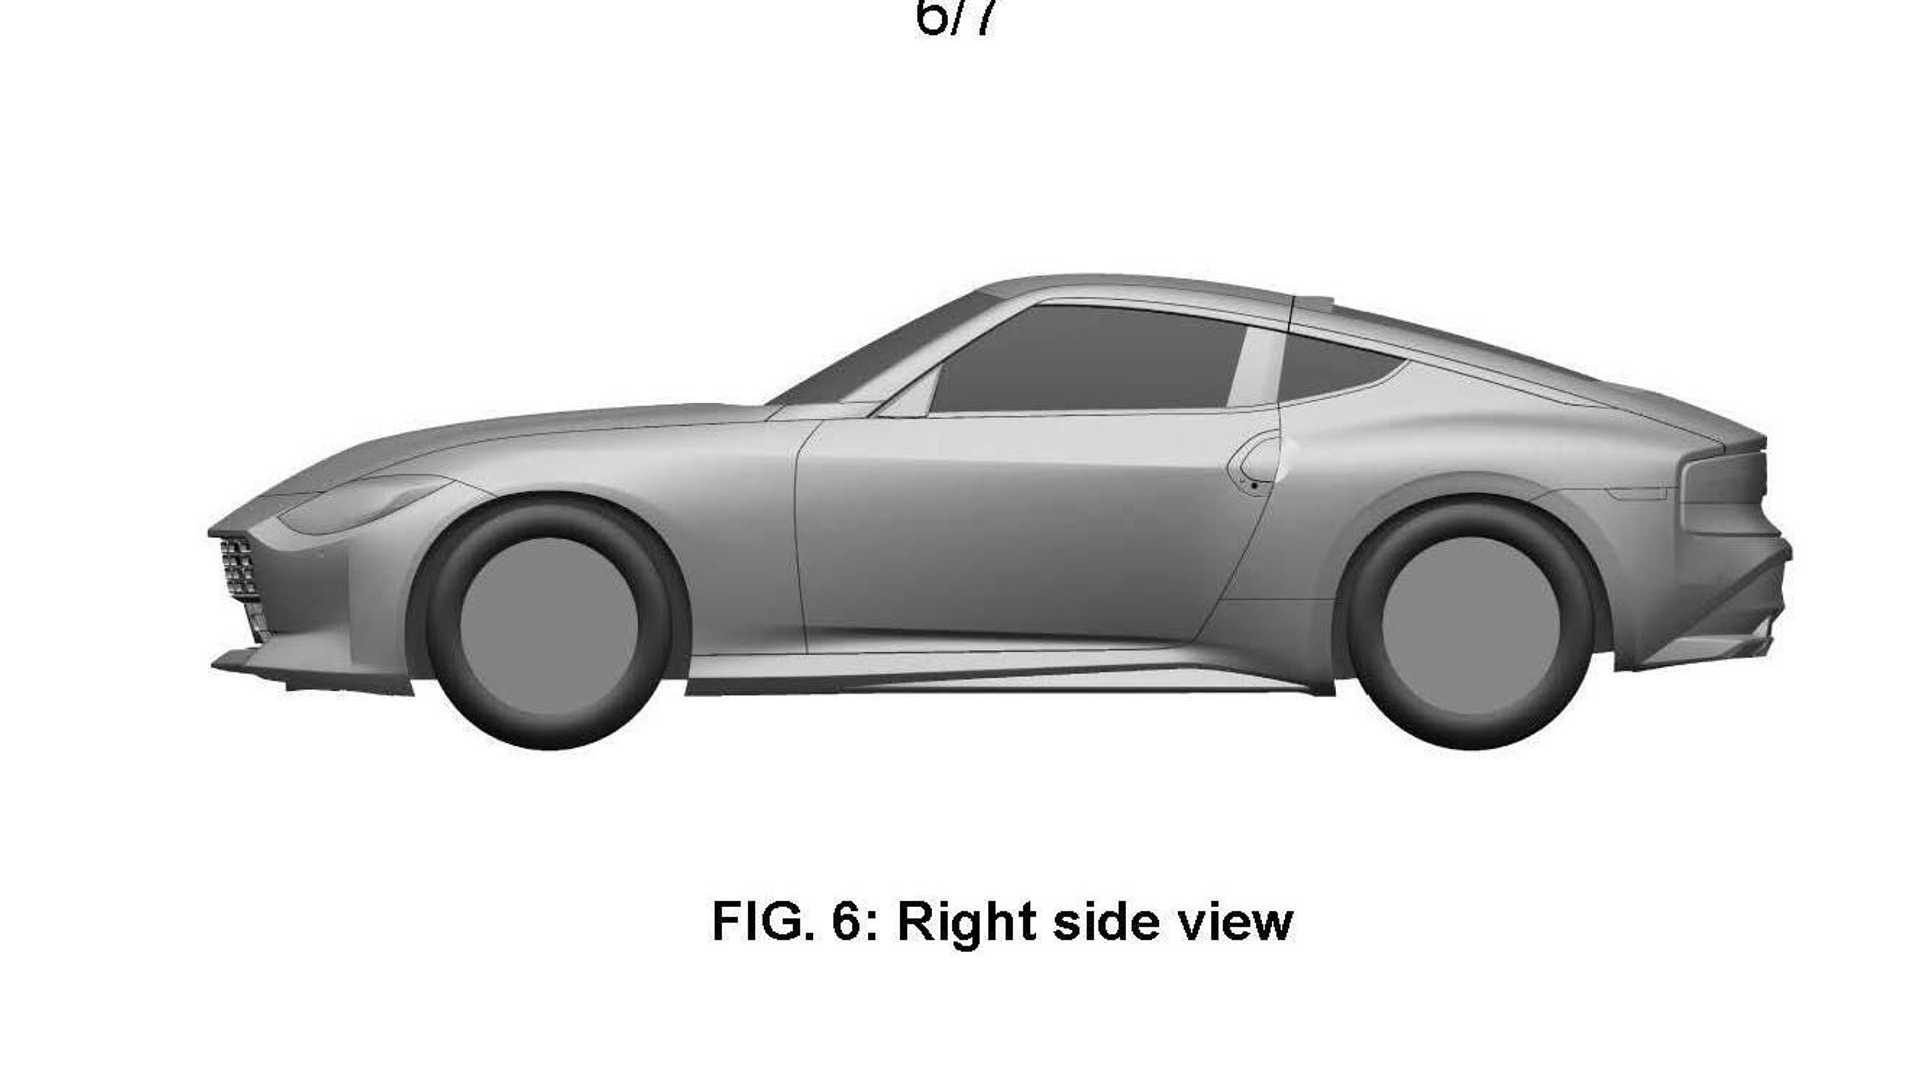 Nissan Z sports car possible production version of patent image